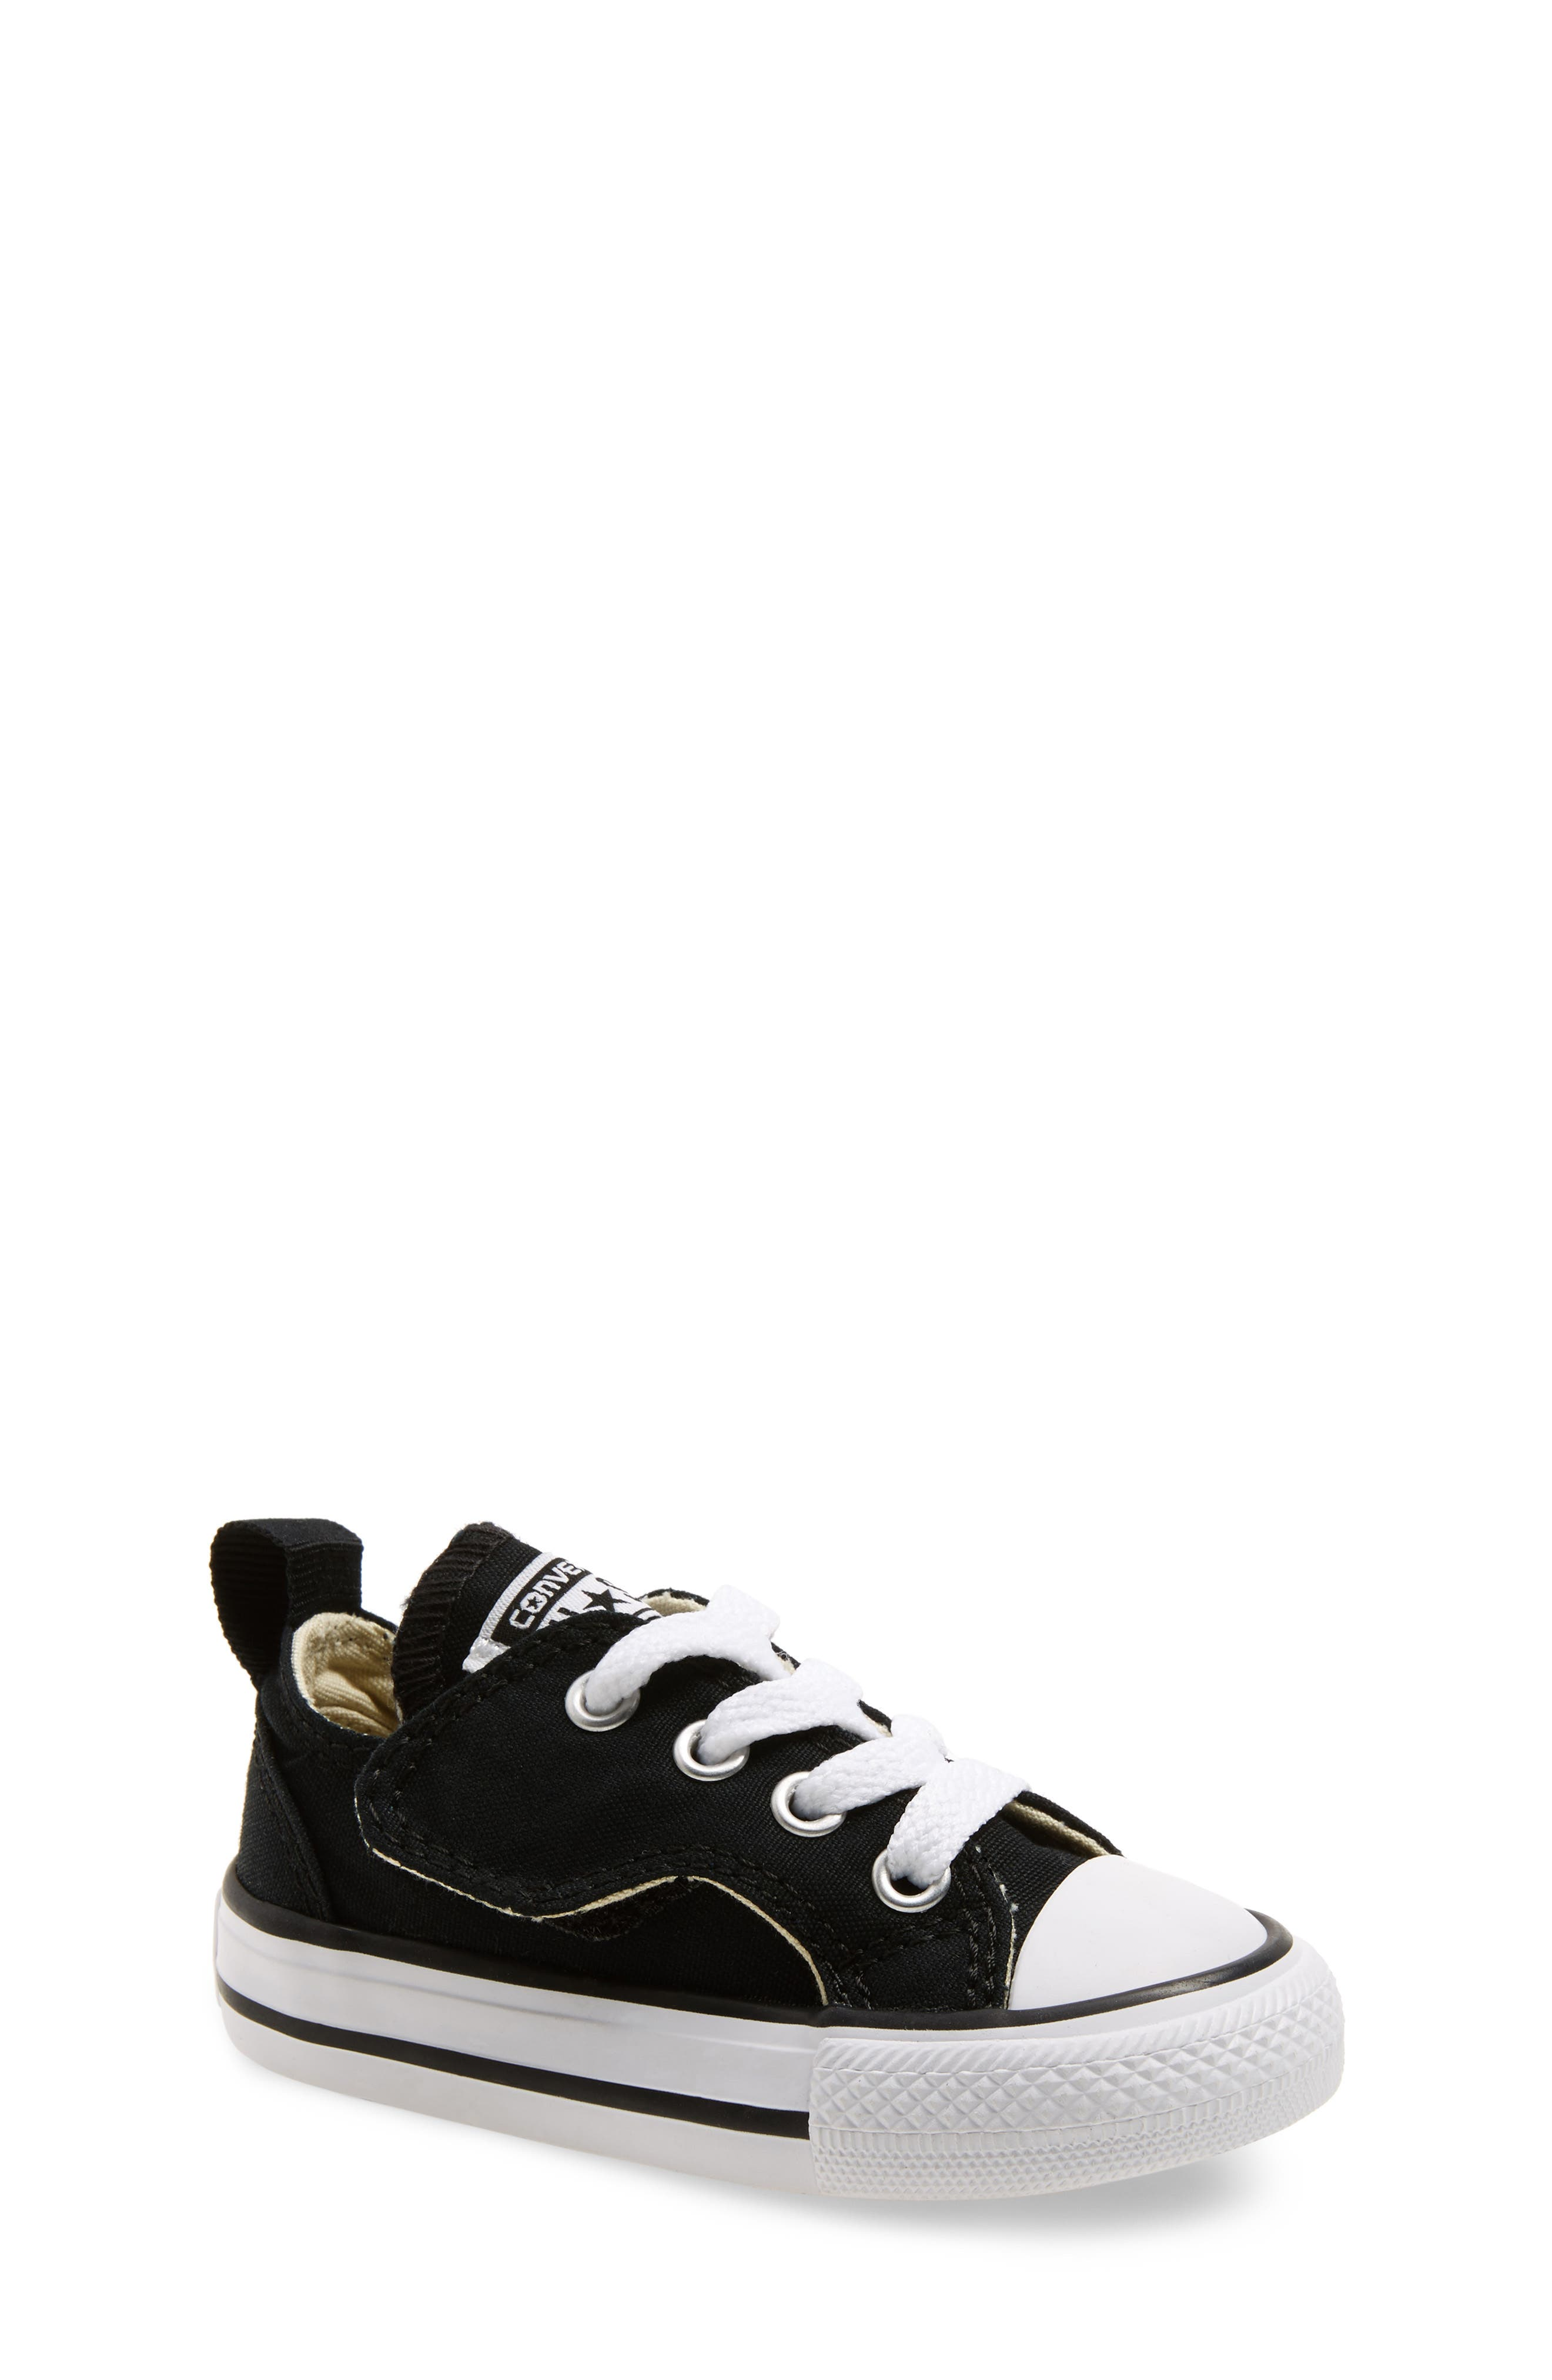 Chuck Taylor<sup>®</sup> All Star<sup>®</sup> Simple Low-Top Sneaker,                             Main thumbnail 1, color,                             001